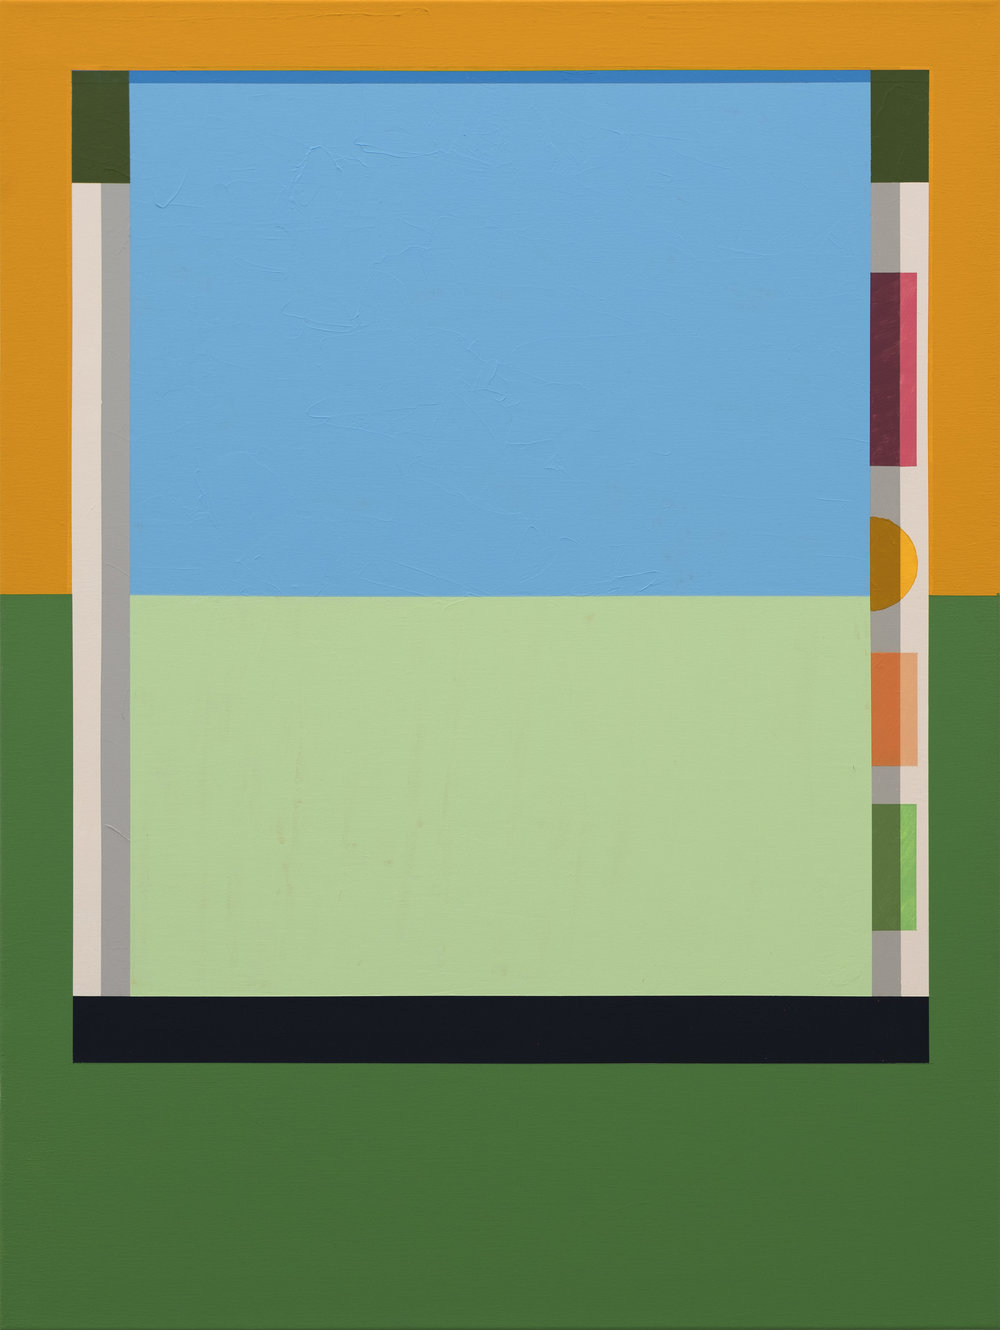 Tony Larson  Yawn Mower , 2018 flashe, acrylic, traffic marker paint on canvas 40h x 30w in